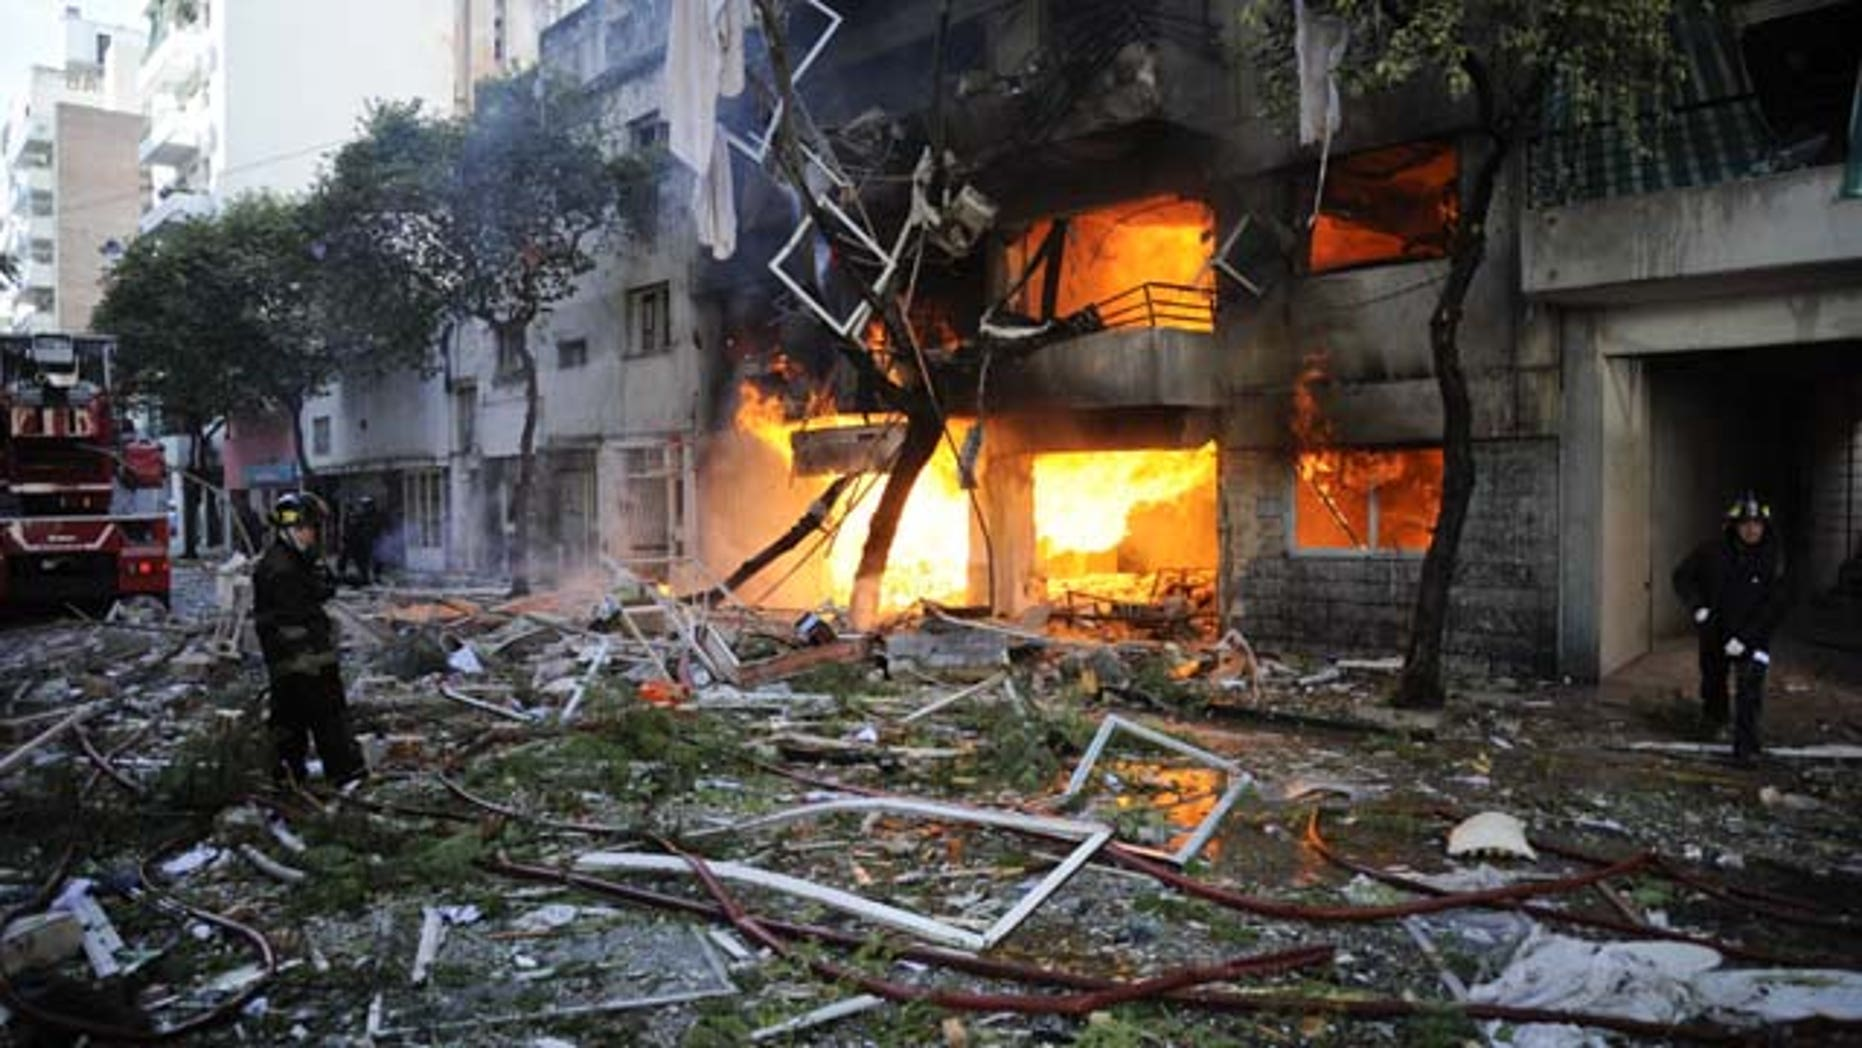 August 6, 2013: Firemen stand in debris caused by a gas explosion that has severely damaged a multi-story apartment building in Rosario, Argentina. The explosion ripped off the building's facade and also damaged other buildings for blocks around. (AP Photo)